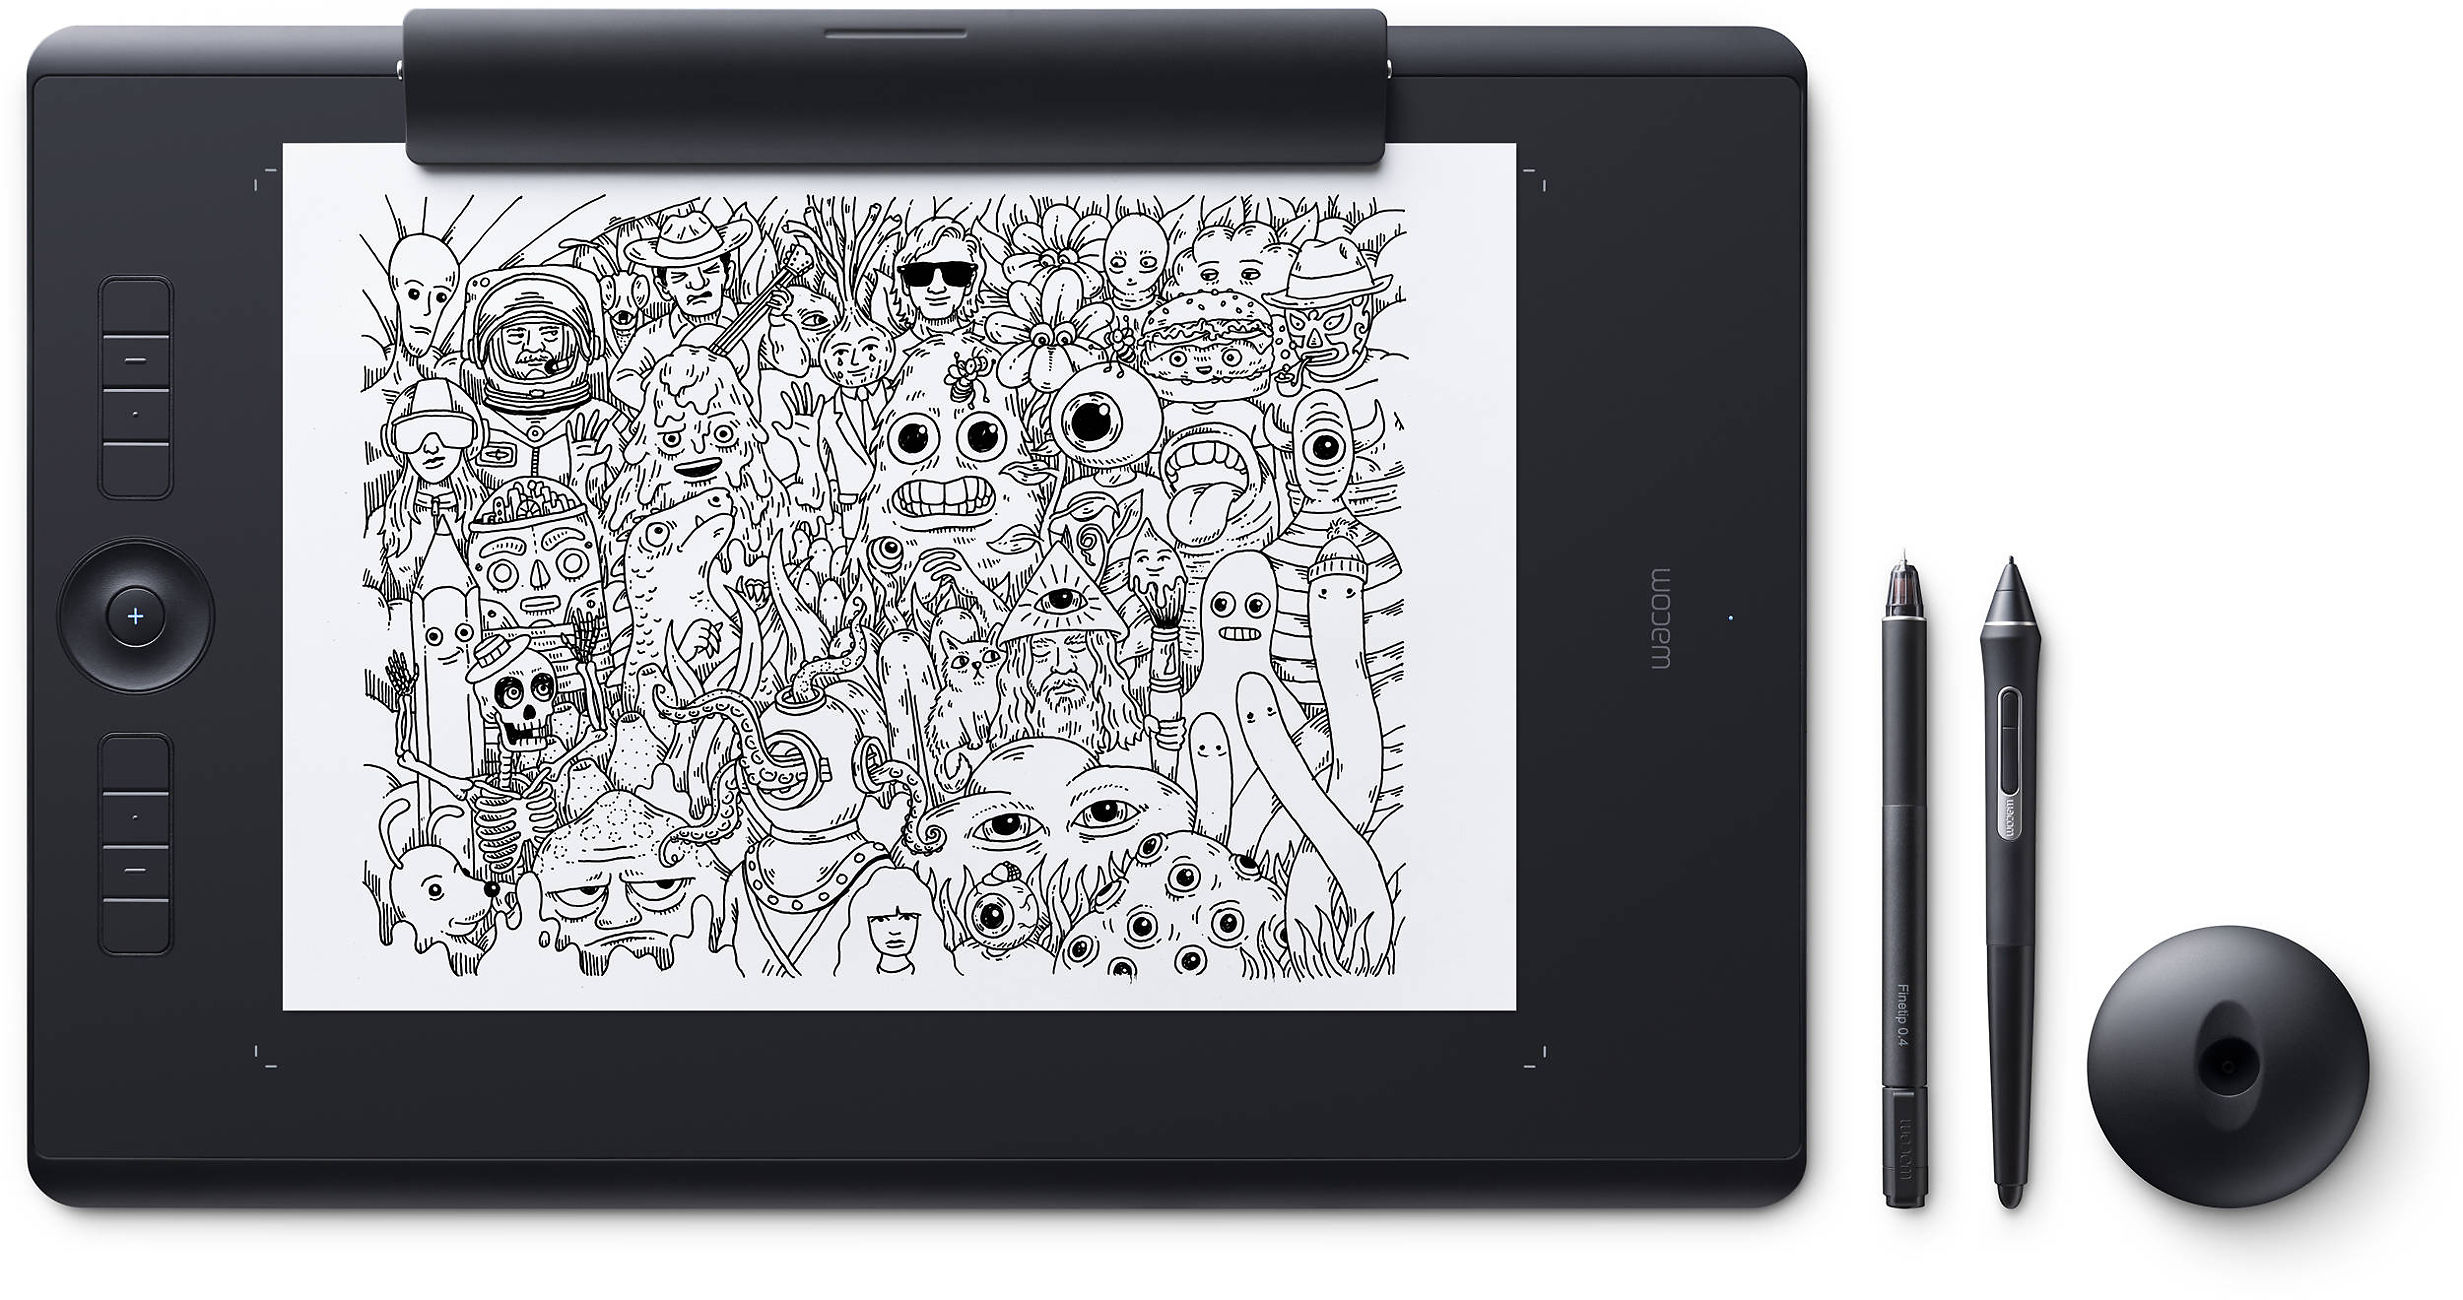 Wacom Intuos Pro Large Graphics Tablet Image